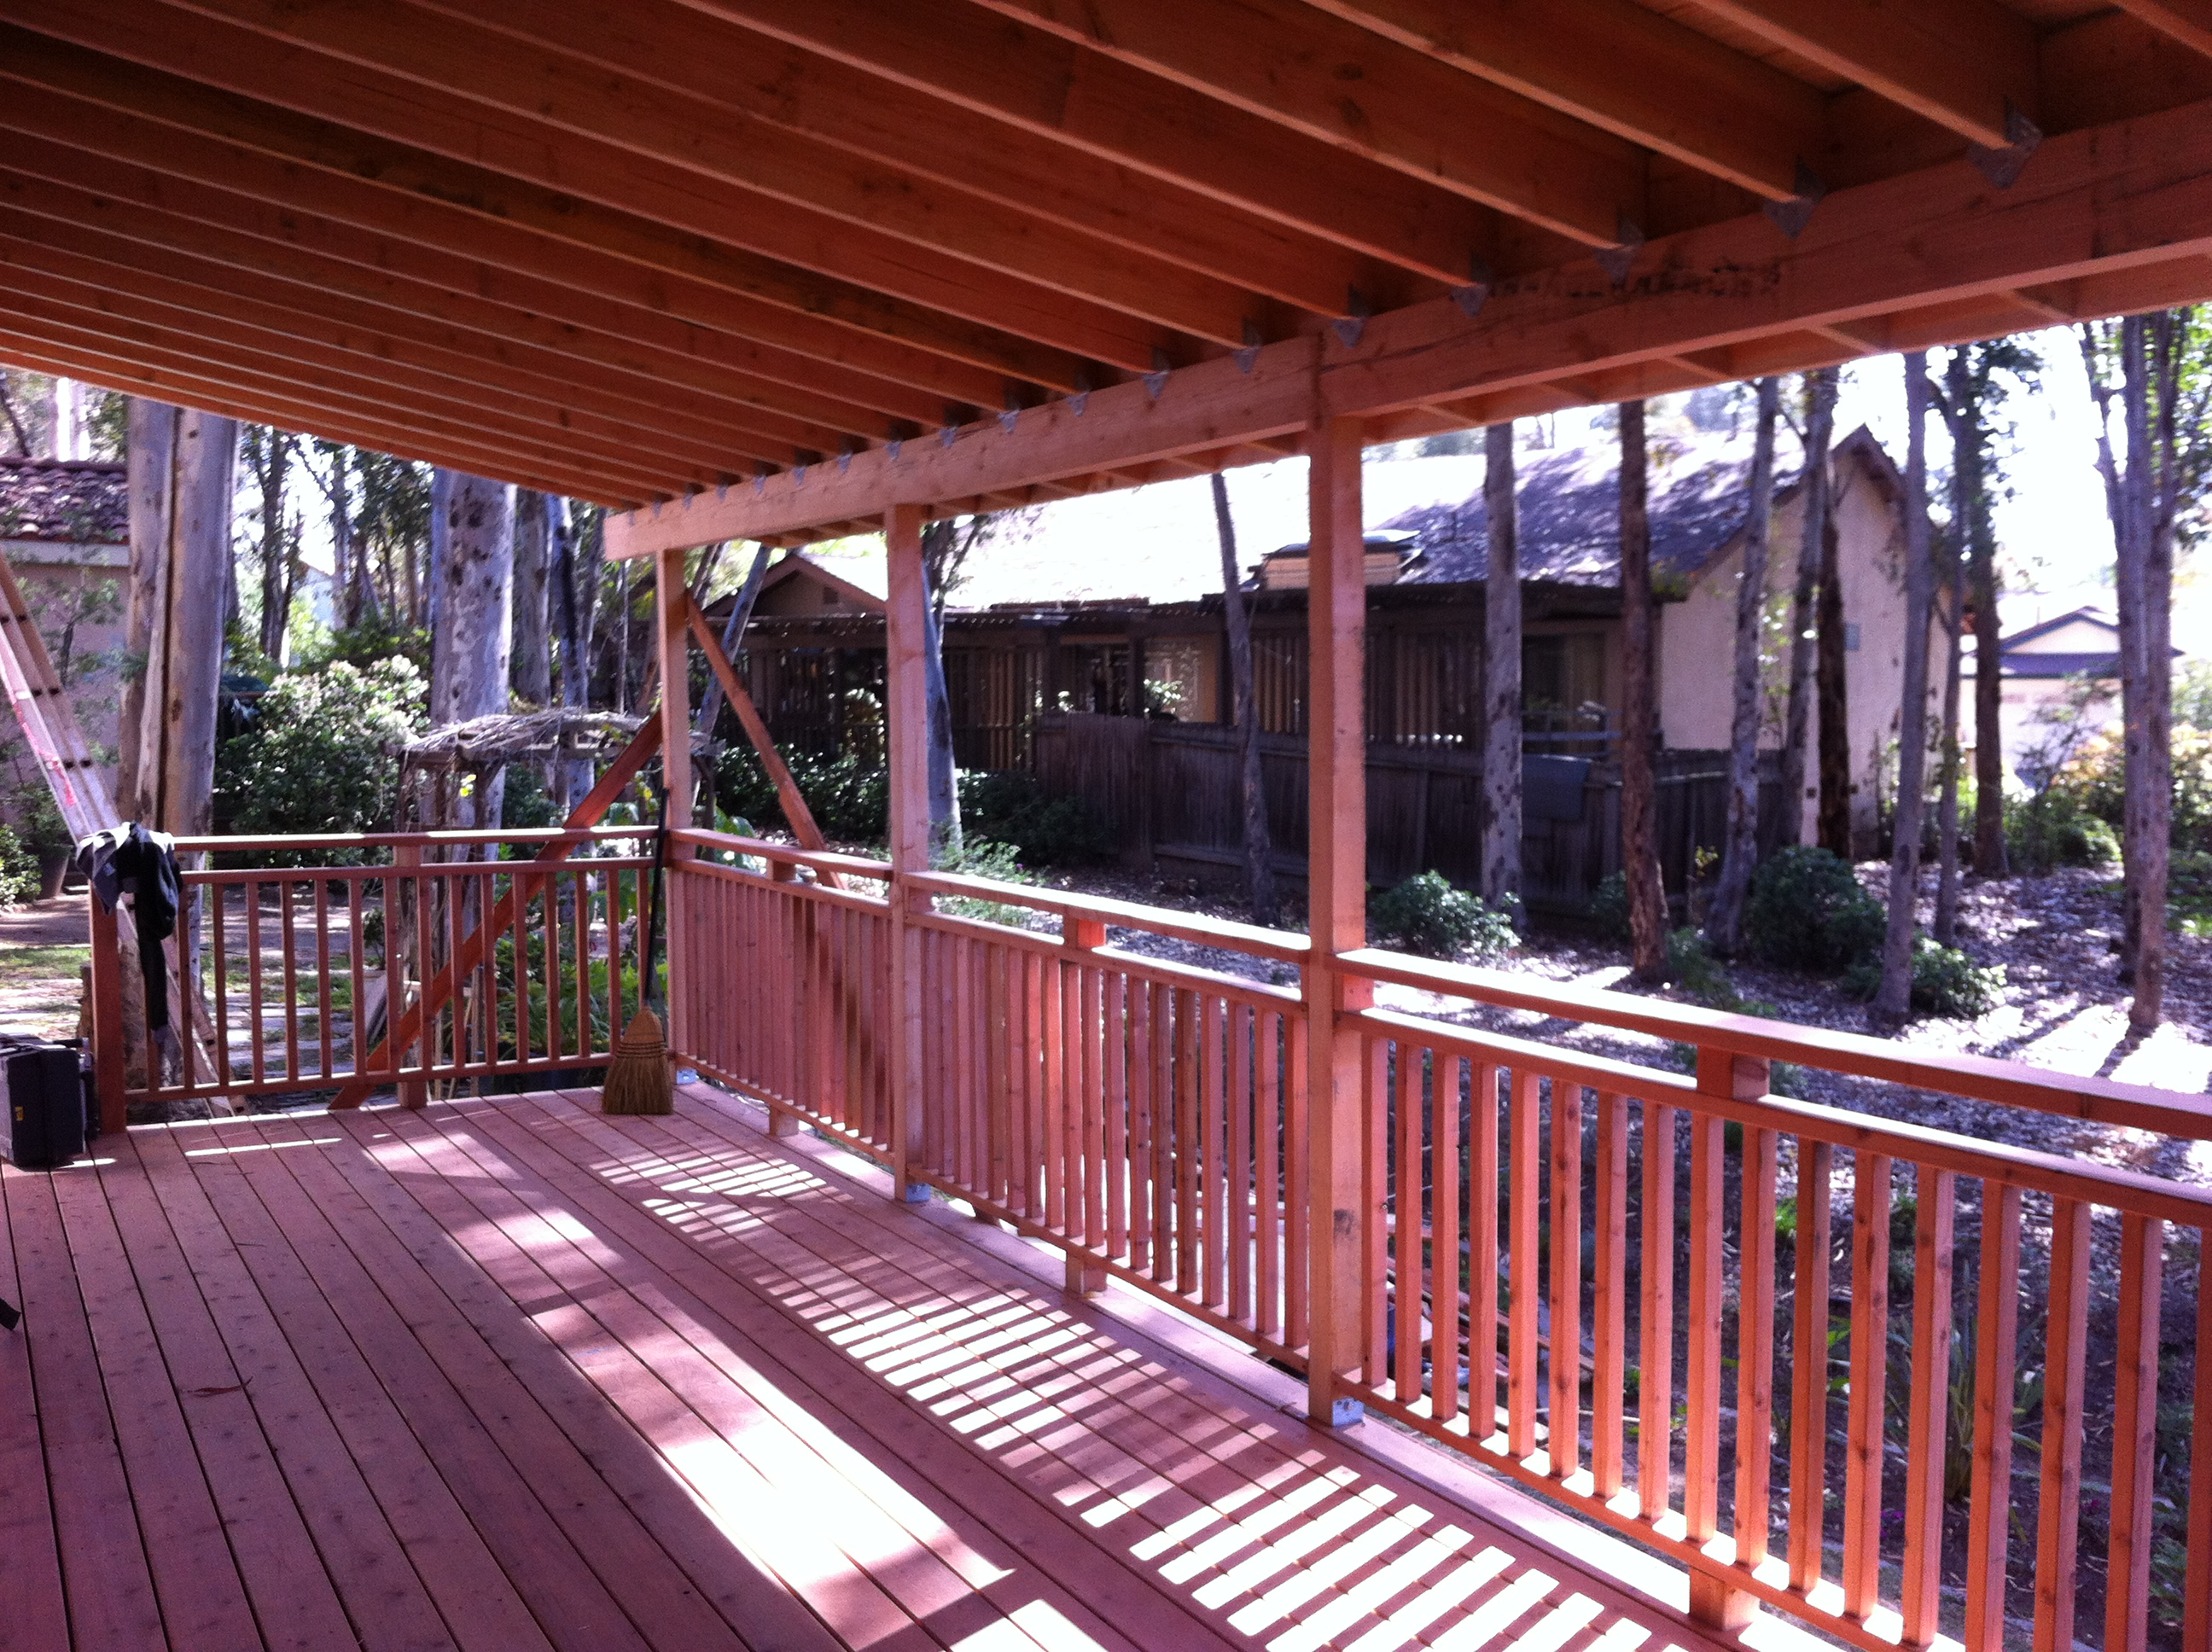 Redwood deck with roof overhang